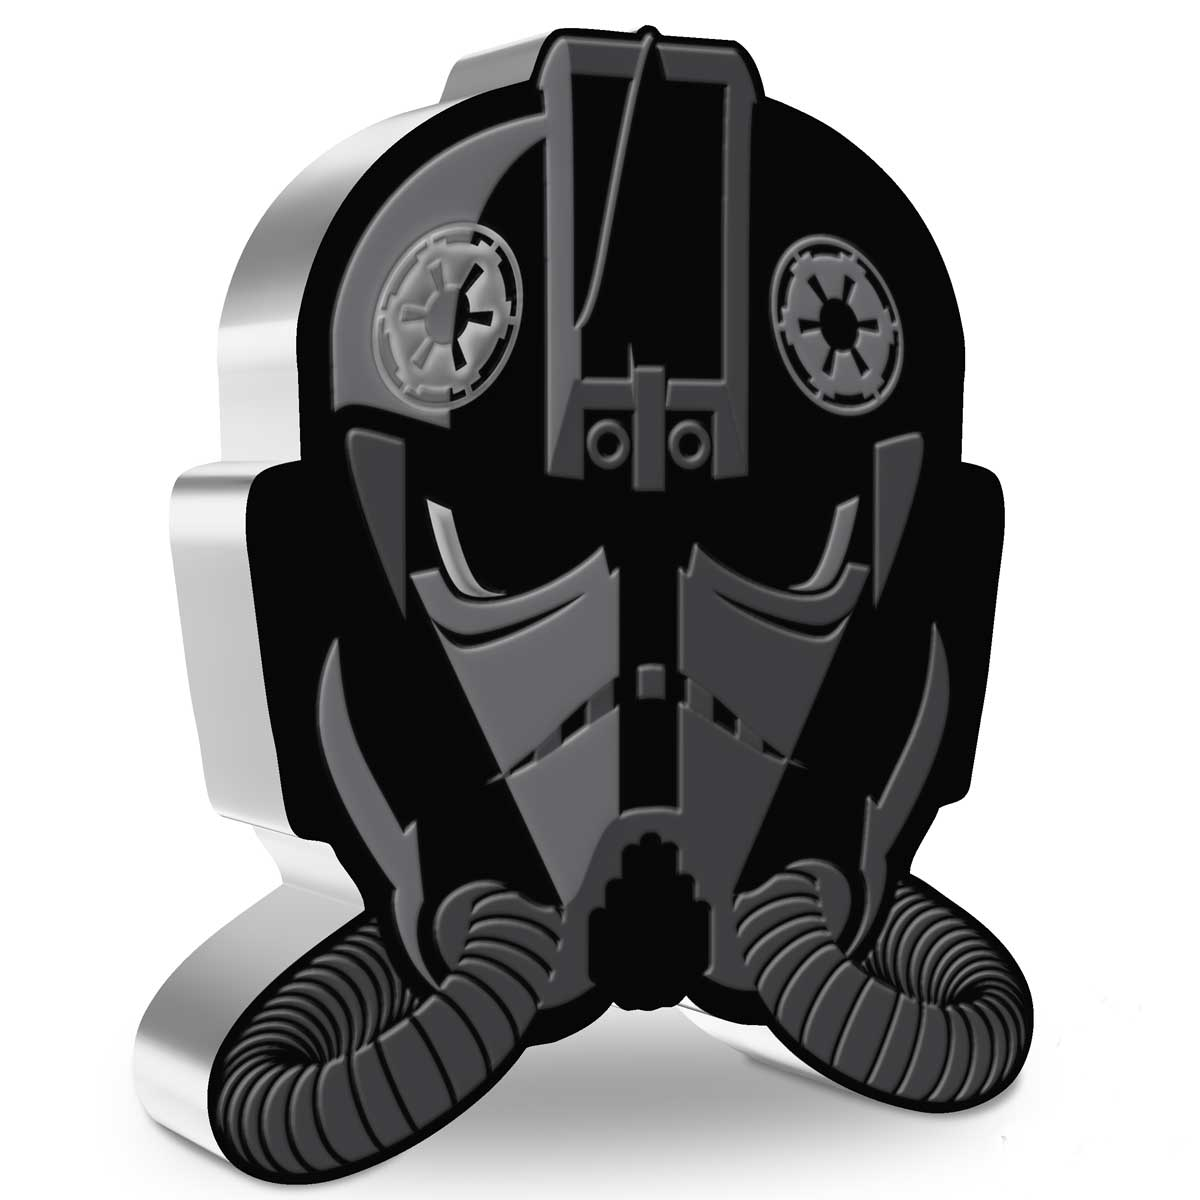 STAR WARS FACES OF THE EMPIRE™ – IMPERIAL TIE FIGHTER PILOT™: 2021 Niue 1oz silver coin